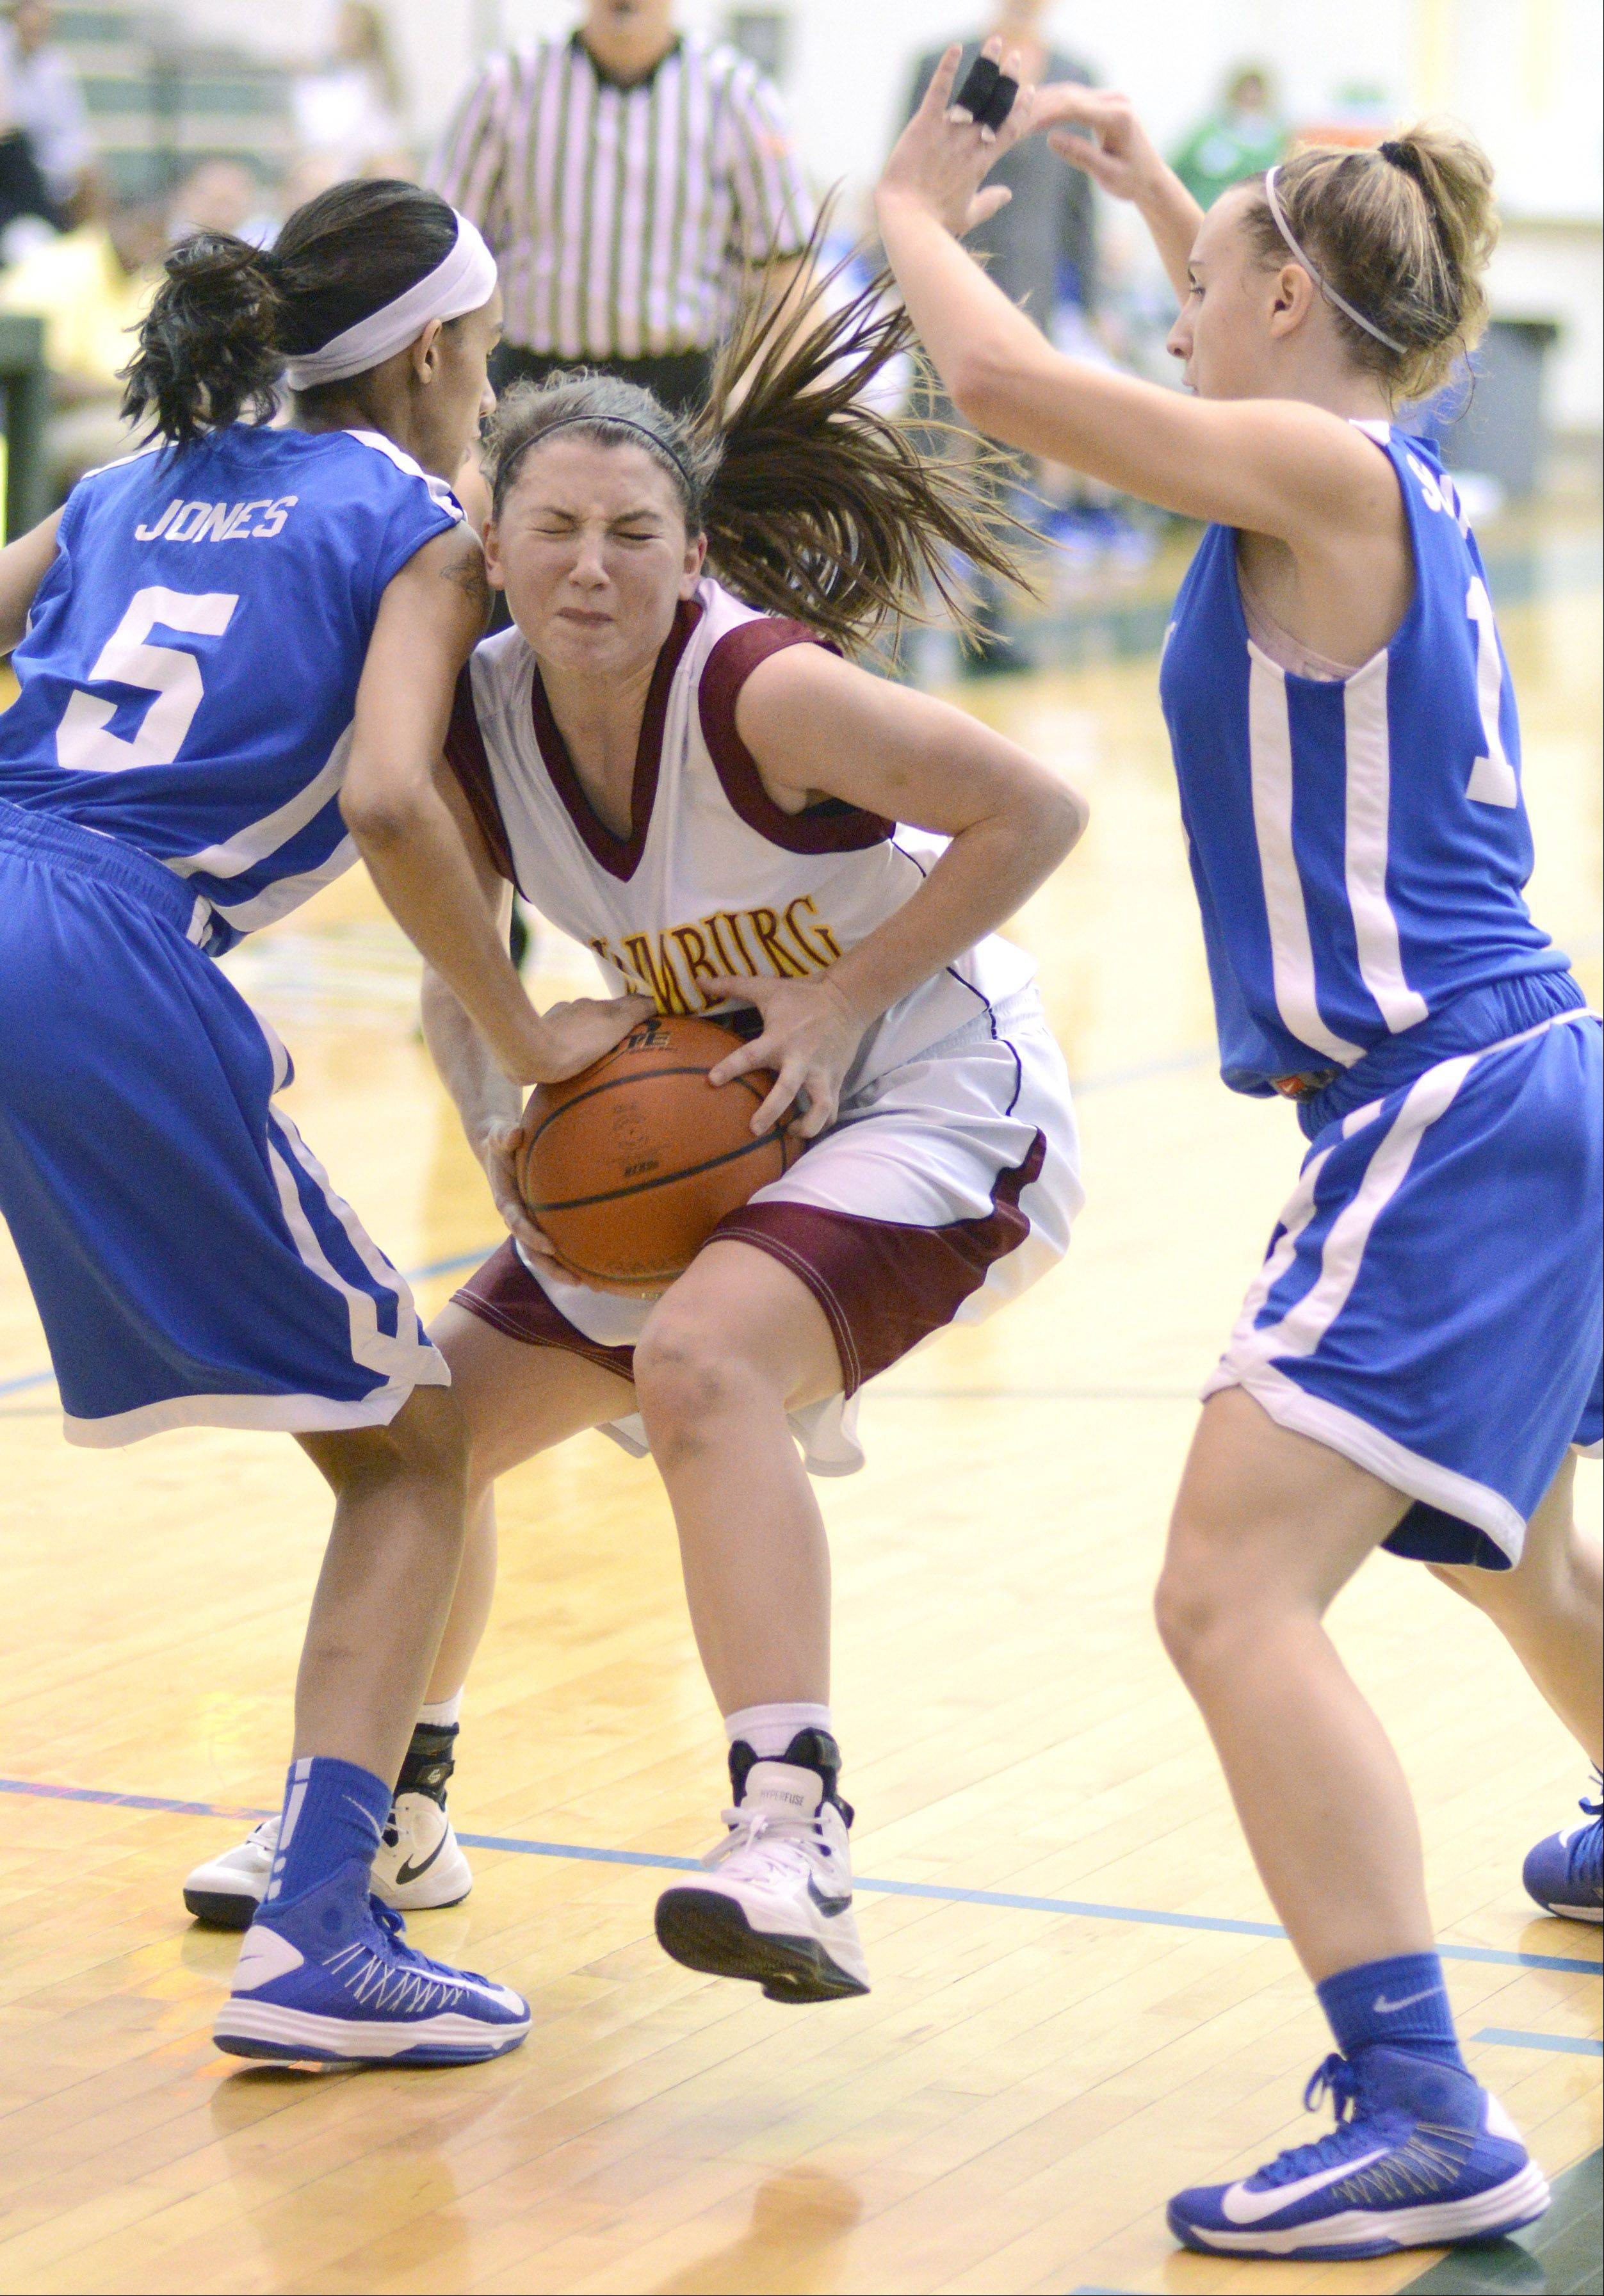 Schaumburg's Amanda Kelly fights through a block by Wheaton North in the second quarter of the Class 4A regional game on Tuesday, February 19.